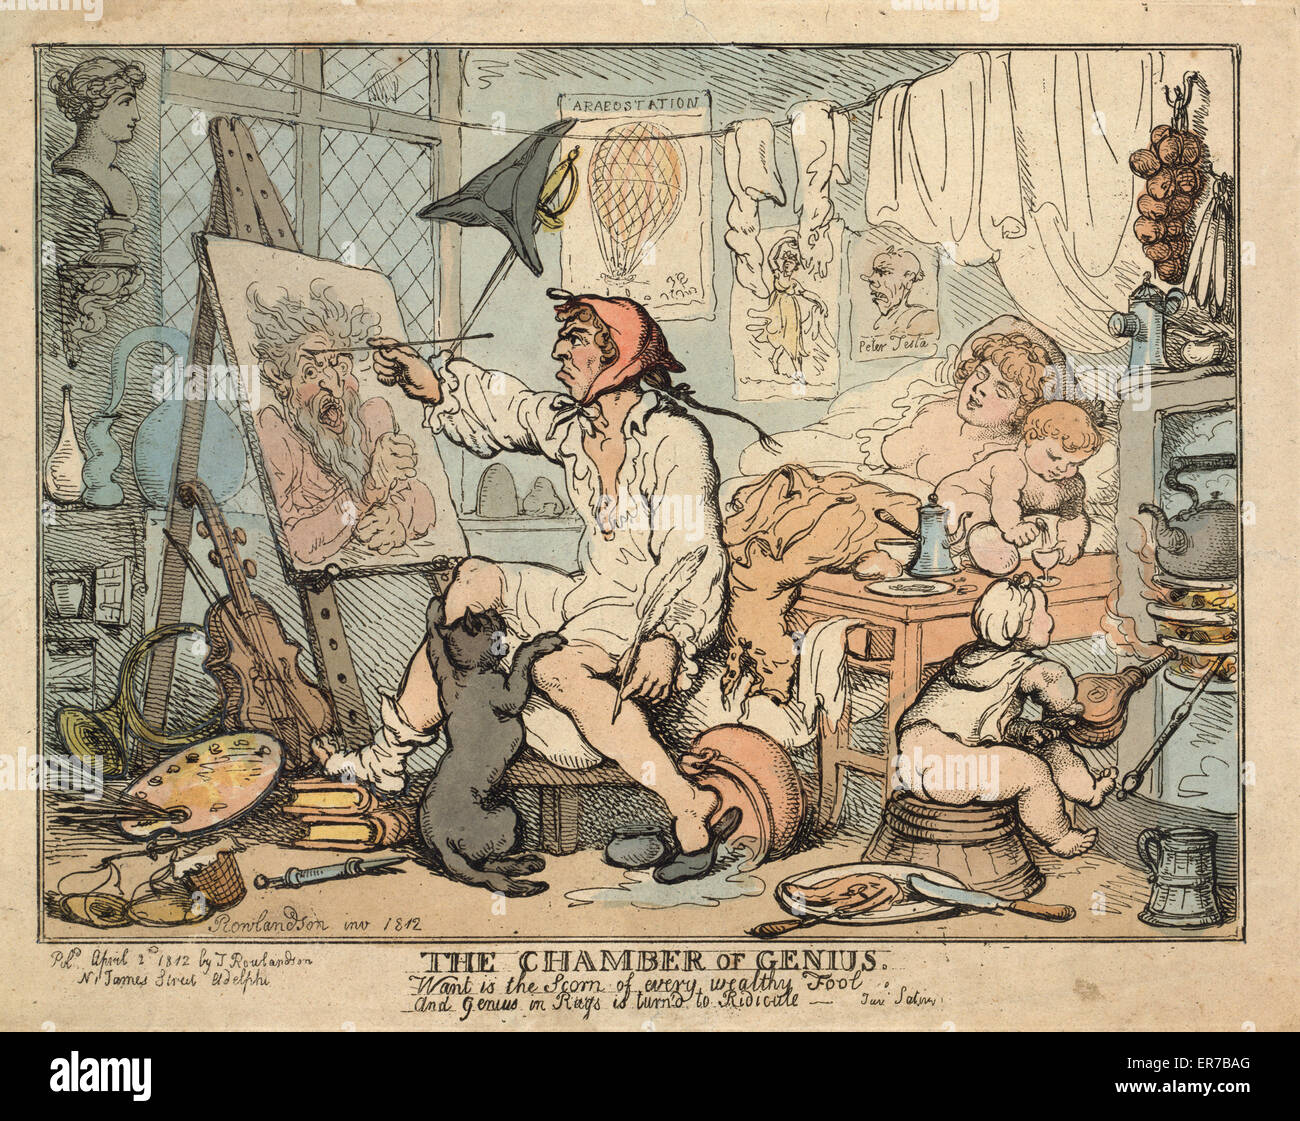 The chamber of genius. British cartoon shows an artist wearing nightshirt and painting a picture at his home/studio - Stock Image